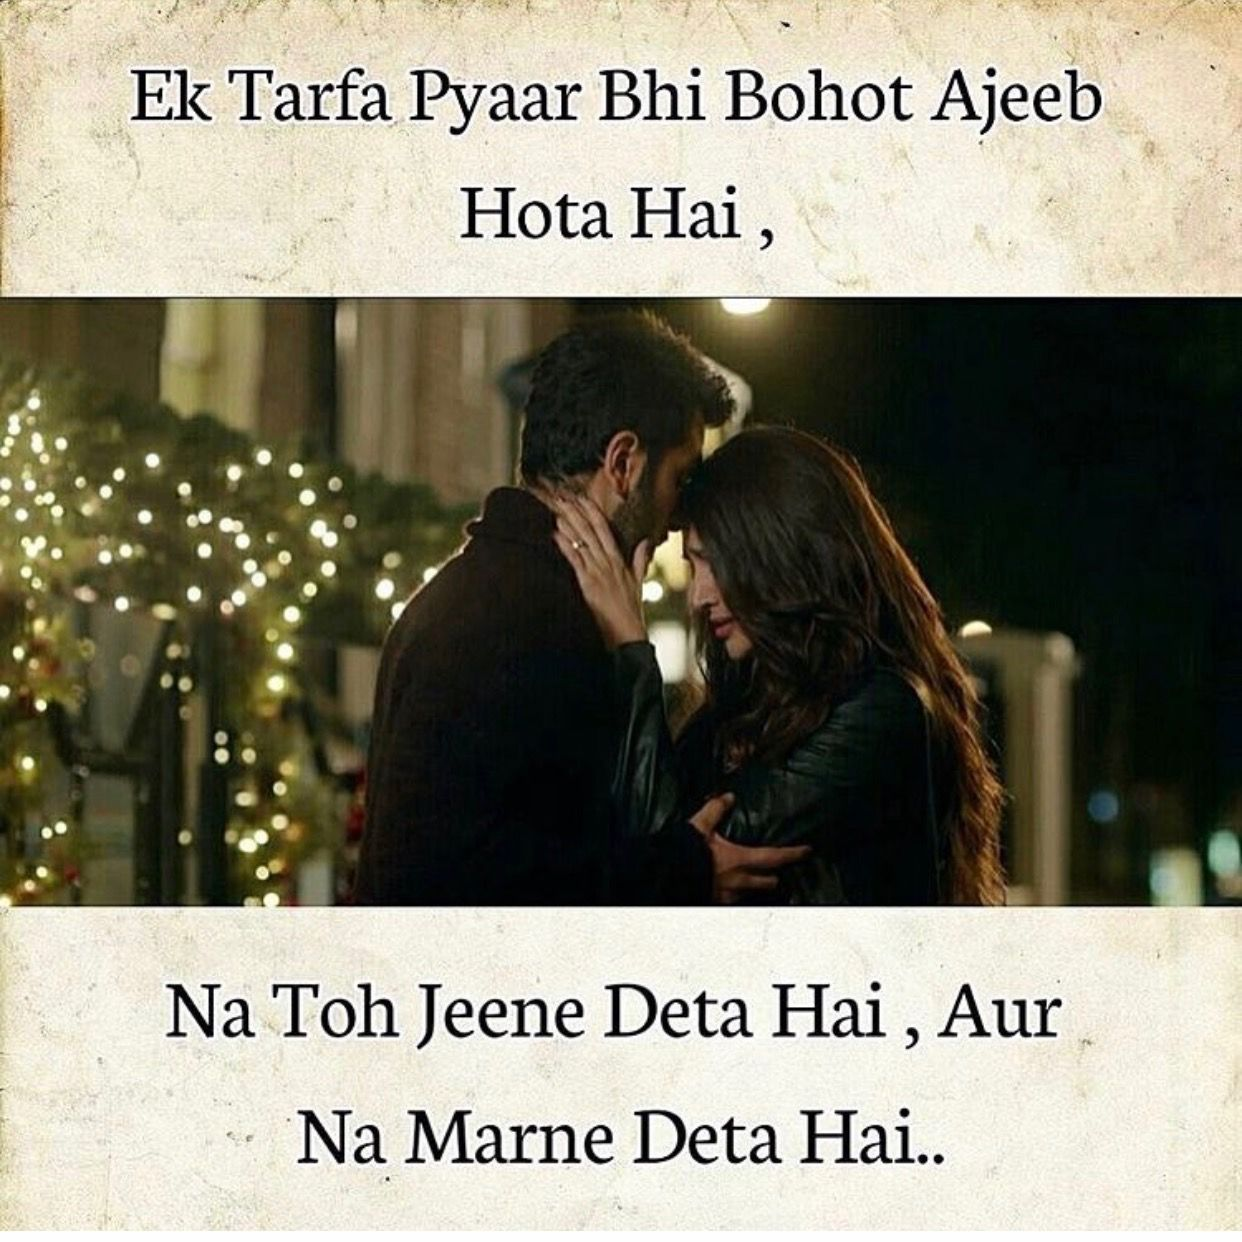 Hindi Quotes Sad Quotes Love Quotes Dear Diary Favorite Quotes Dairy Bollywood Lyrics Poems